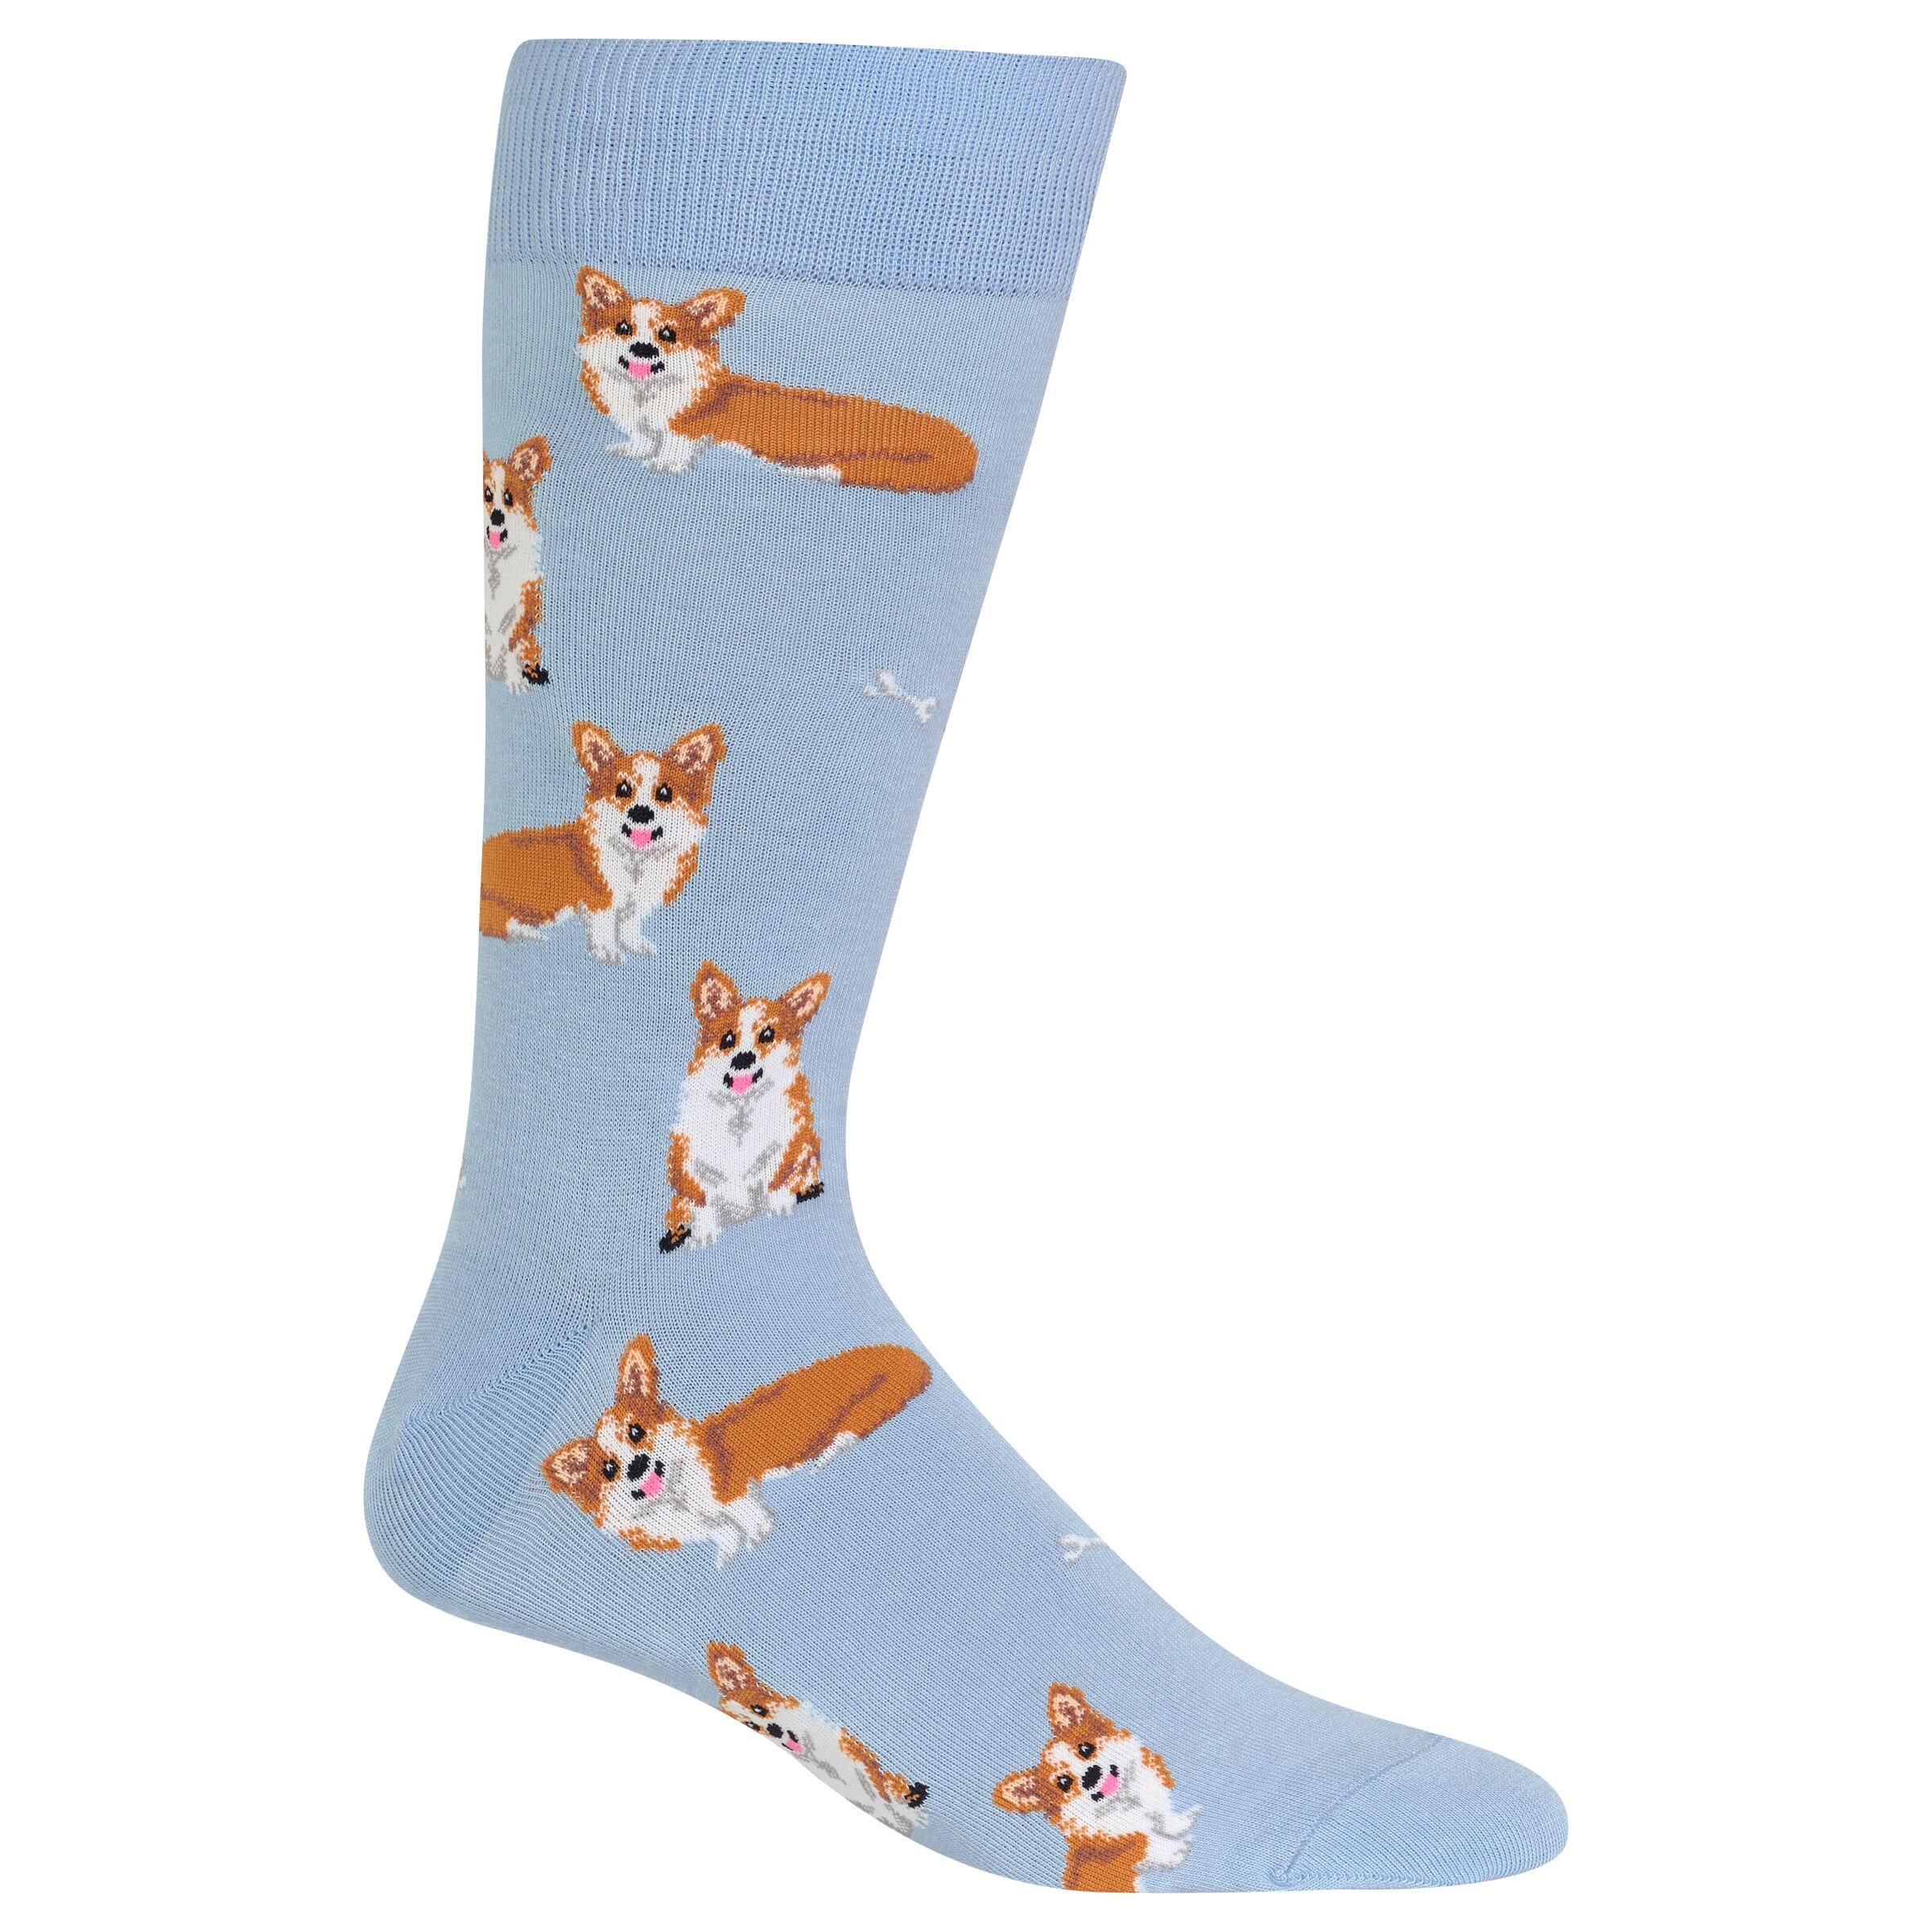 7e8289a9b38 Corgi Hot Sox Dress Crew Socks Light Blue New Men s Size 10-13 Royal Dog  Fashion